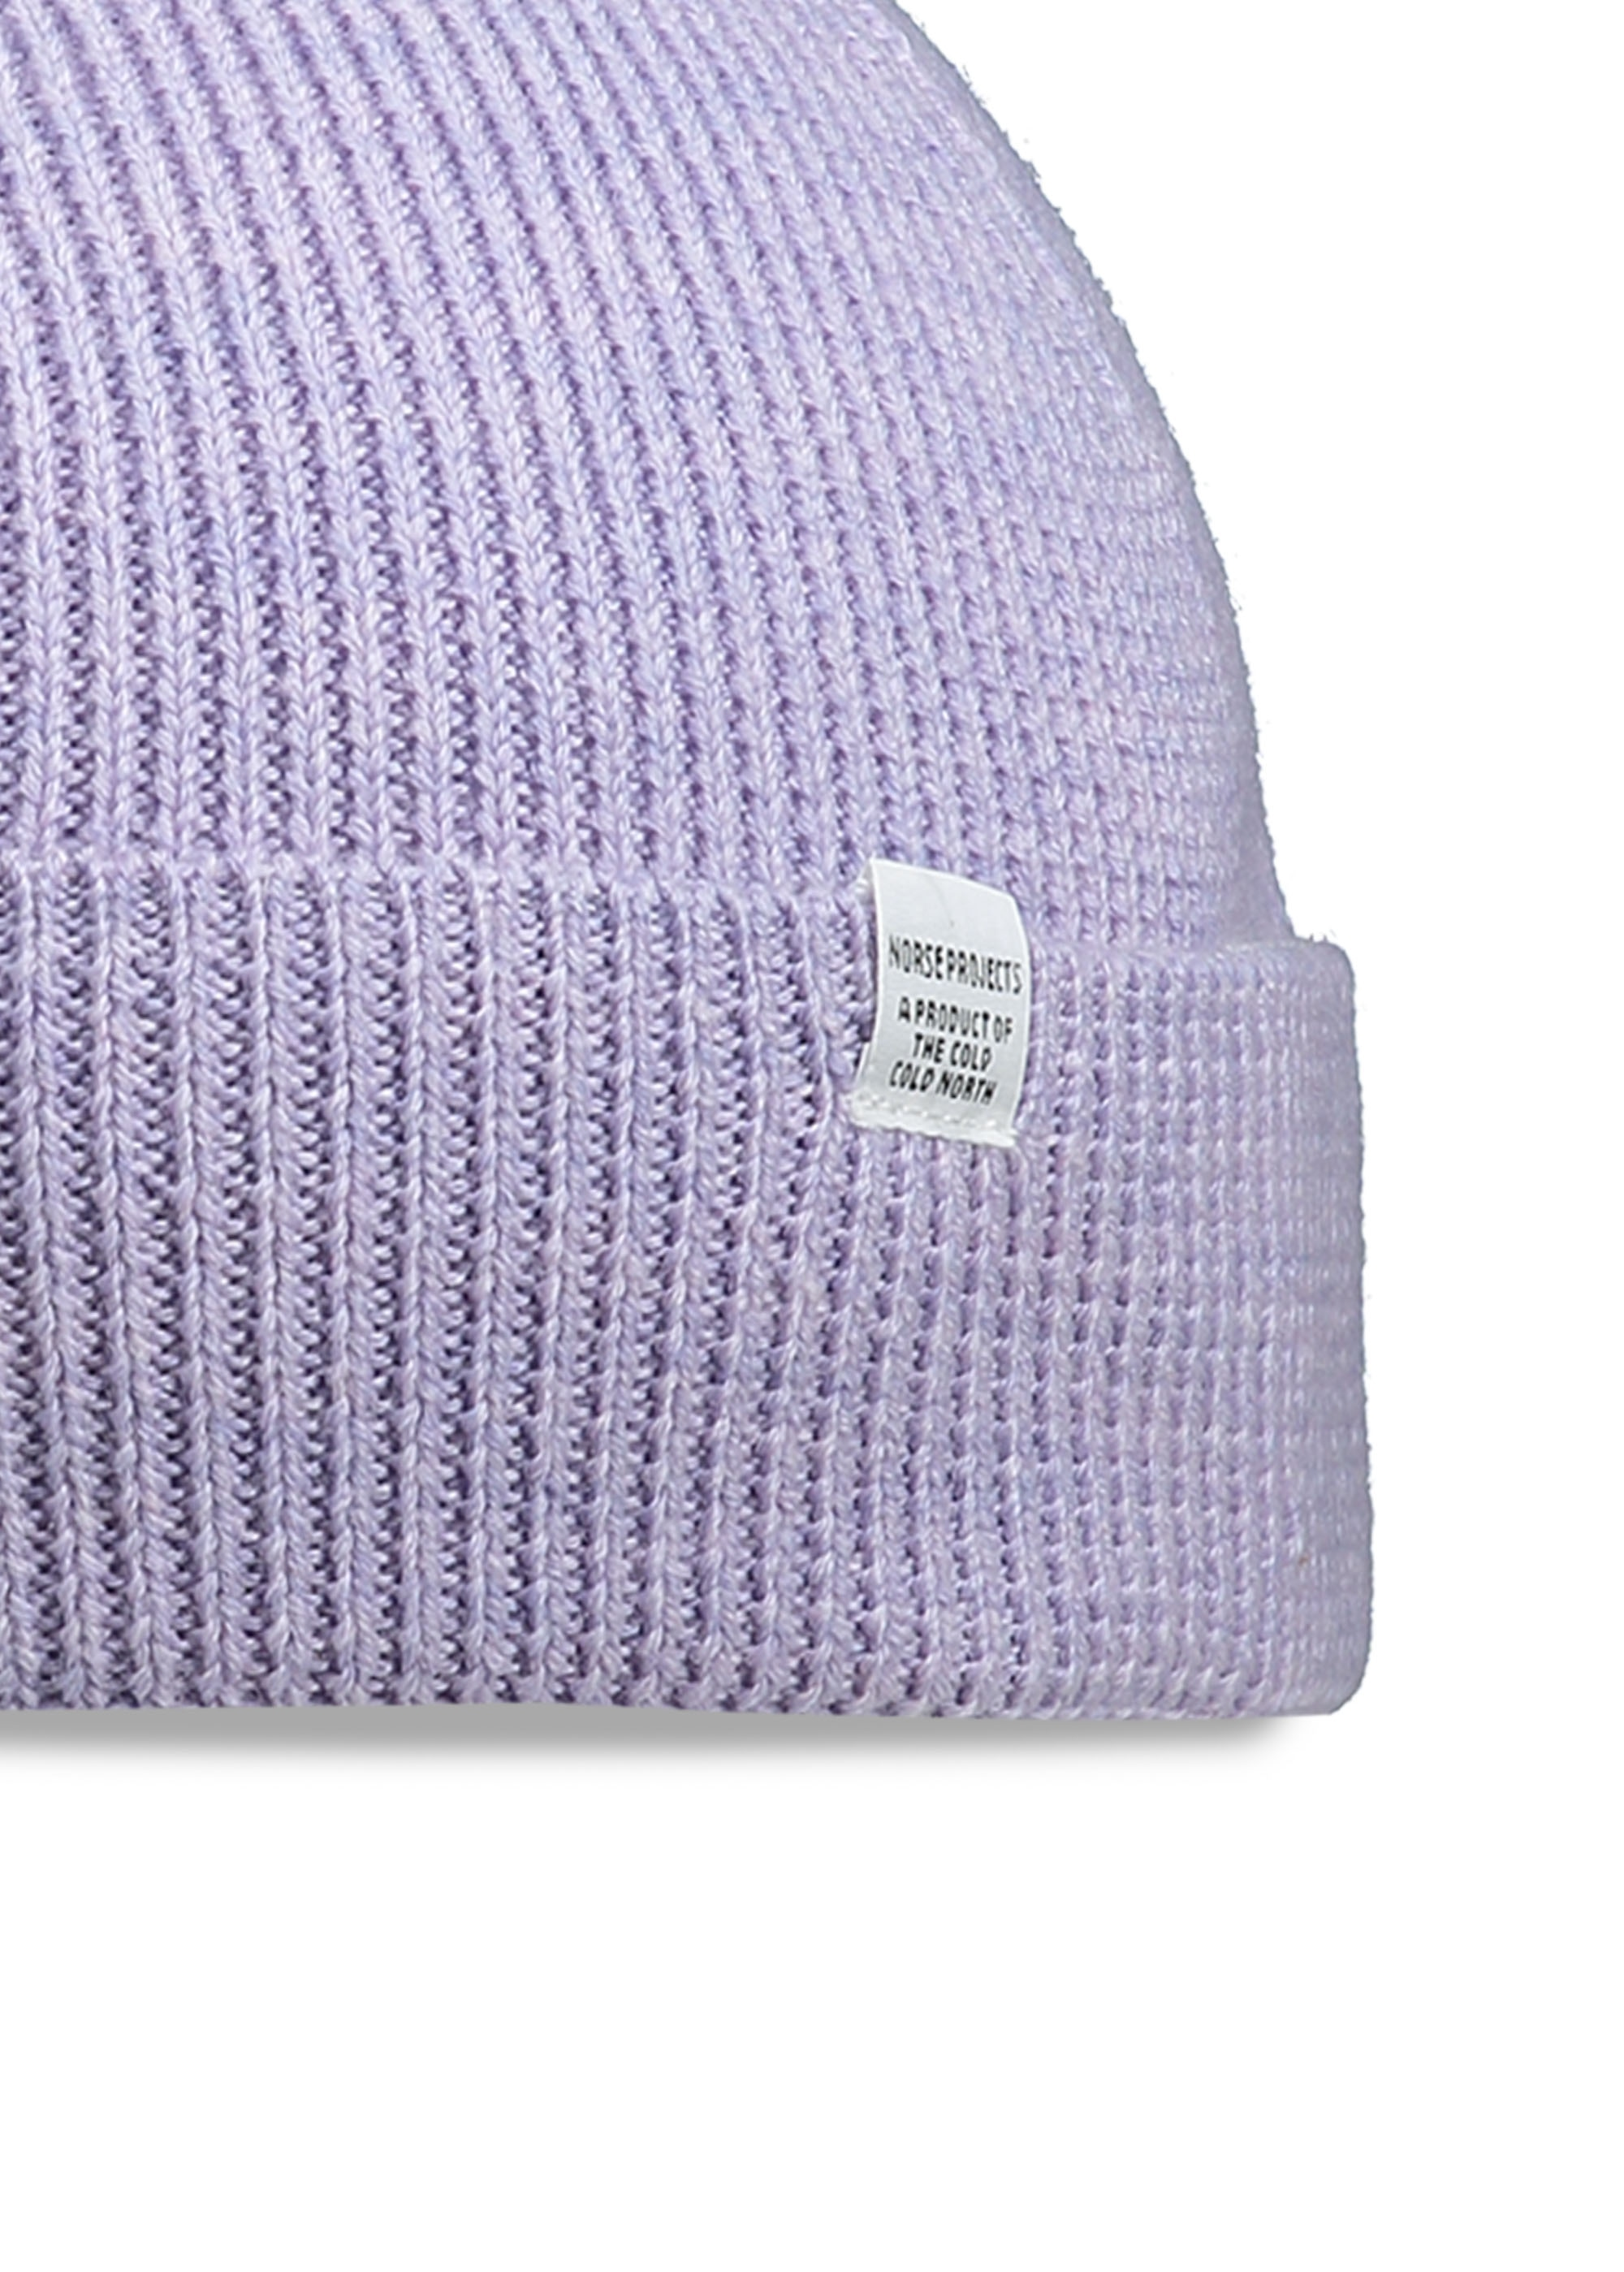 1c381163822 Norse Projects Norse Rib Beanie - Heather - Headwear from Triads UK